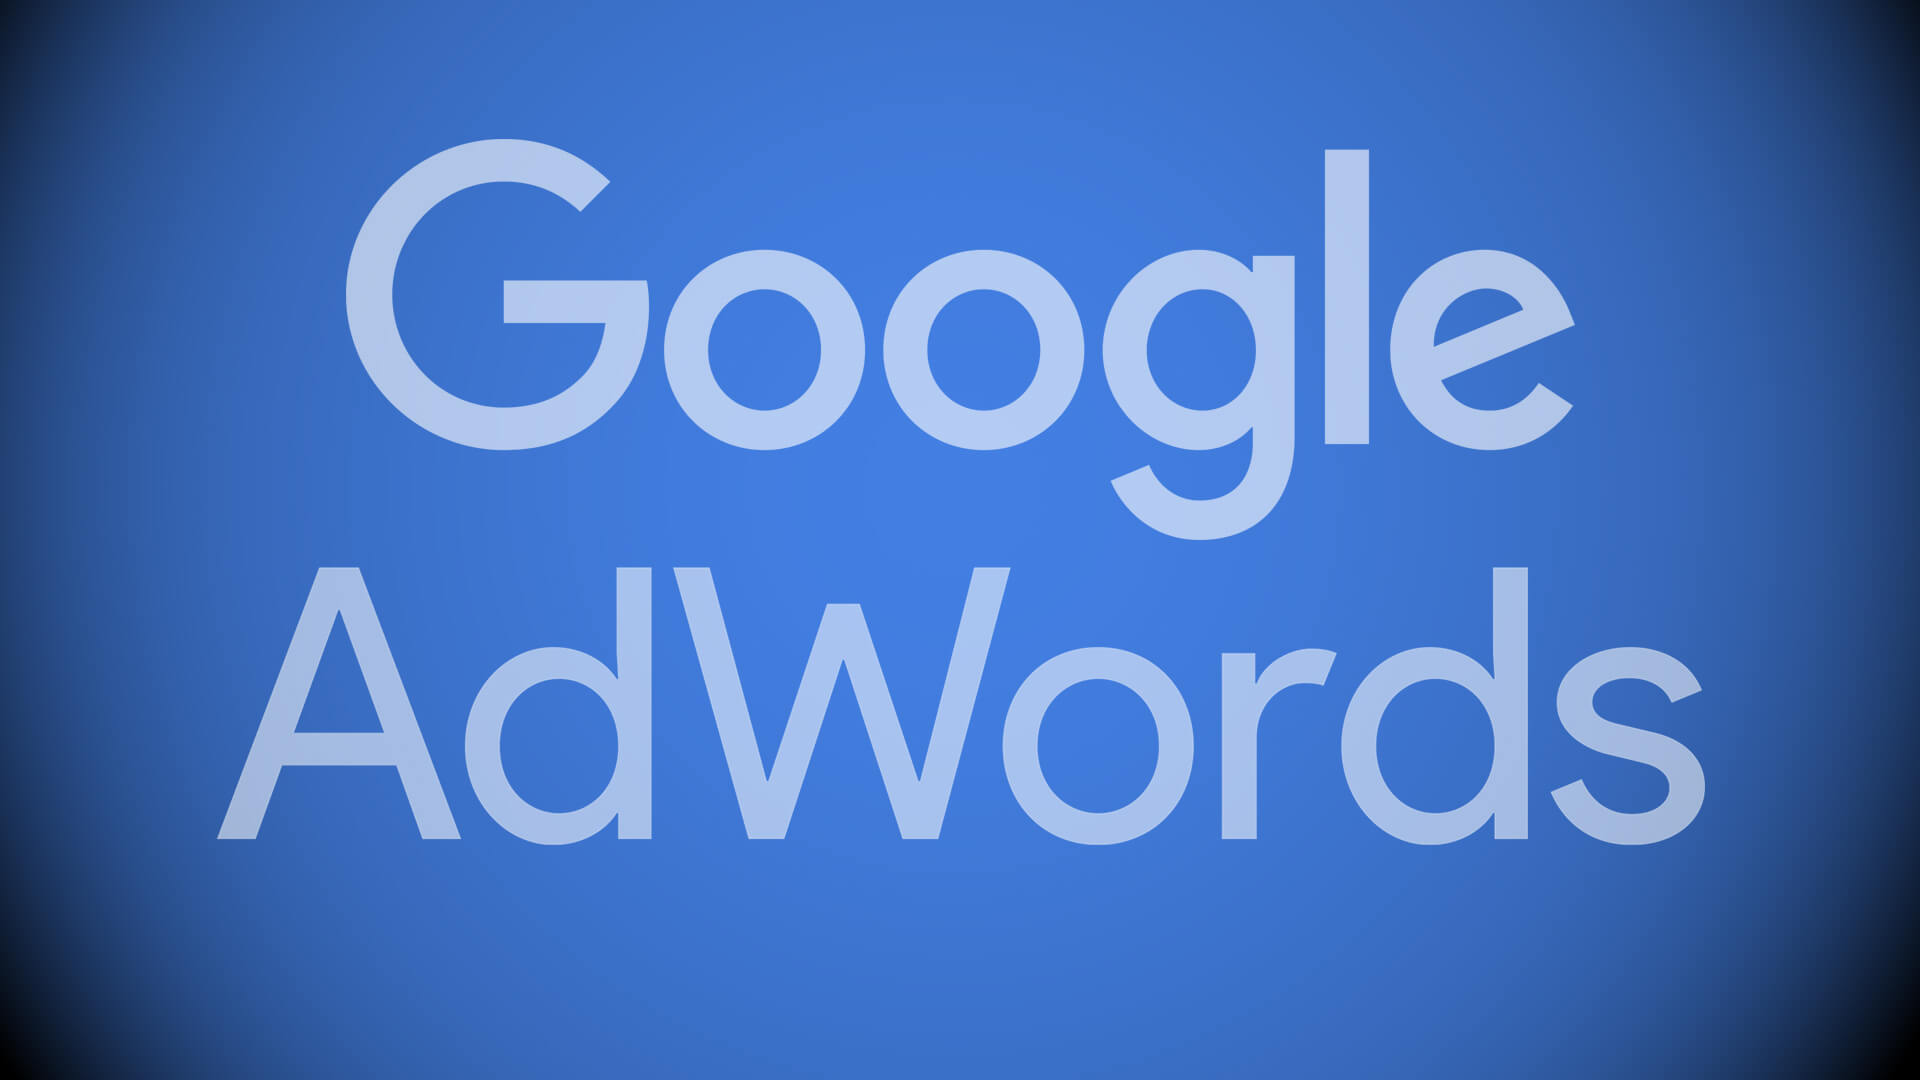 google-adwords-blue1-1920